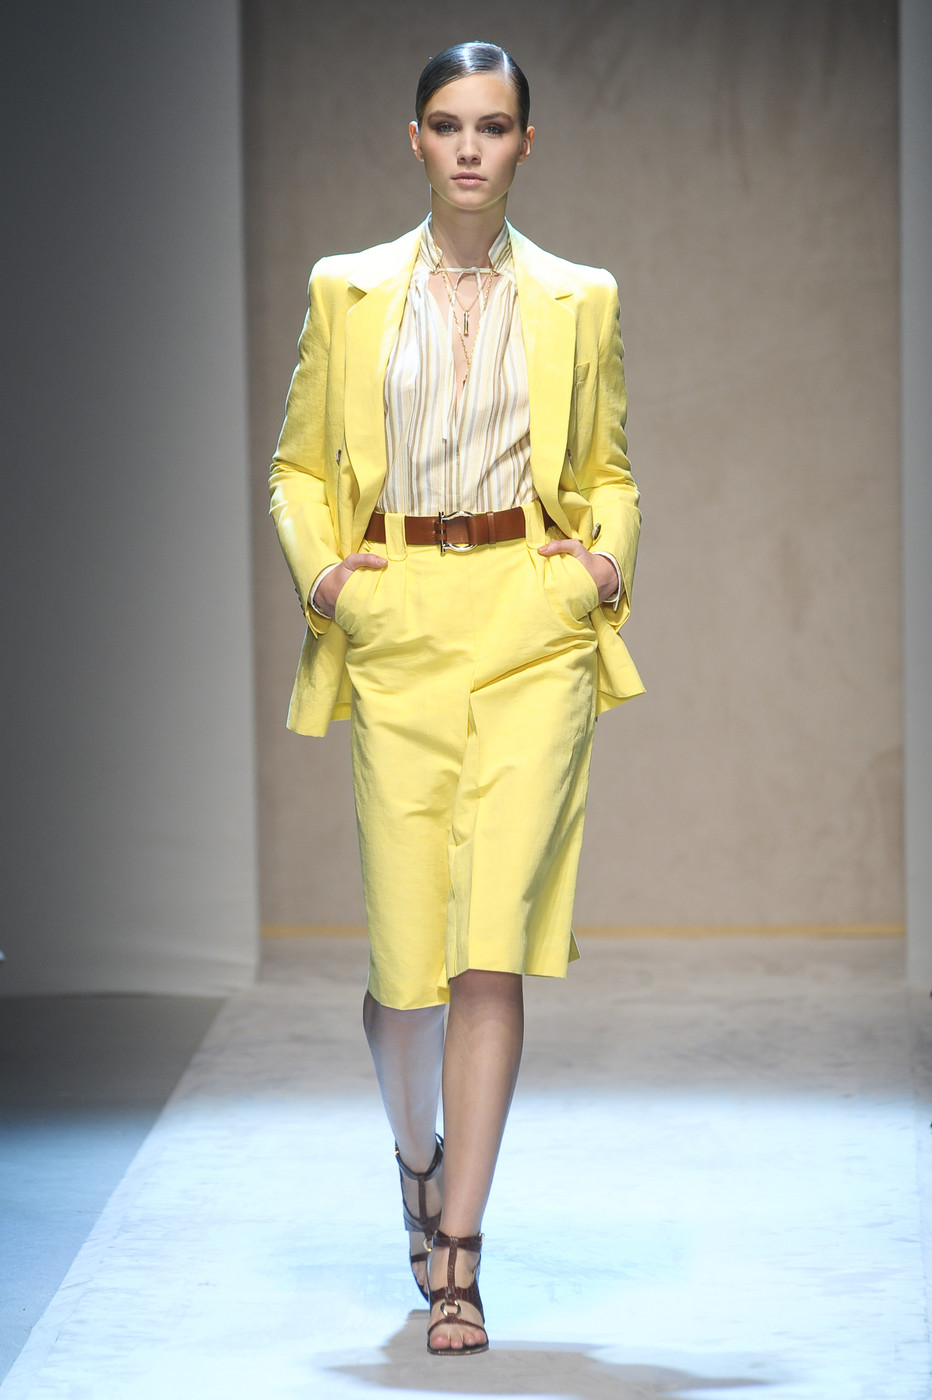 via fashioned by love | Salvatore Ferragamo Spring/Summer 2011